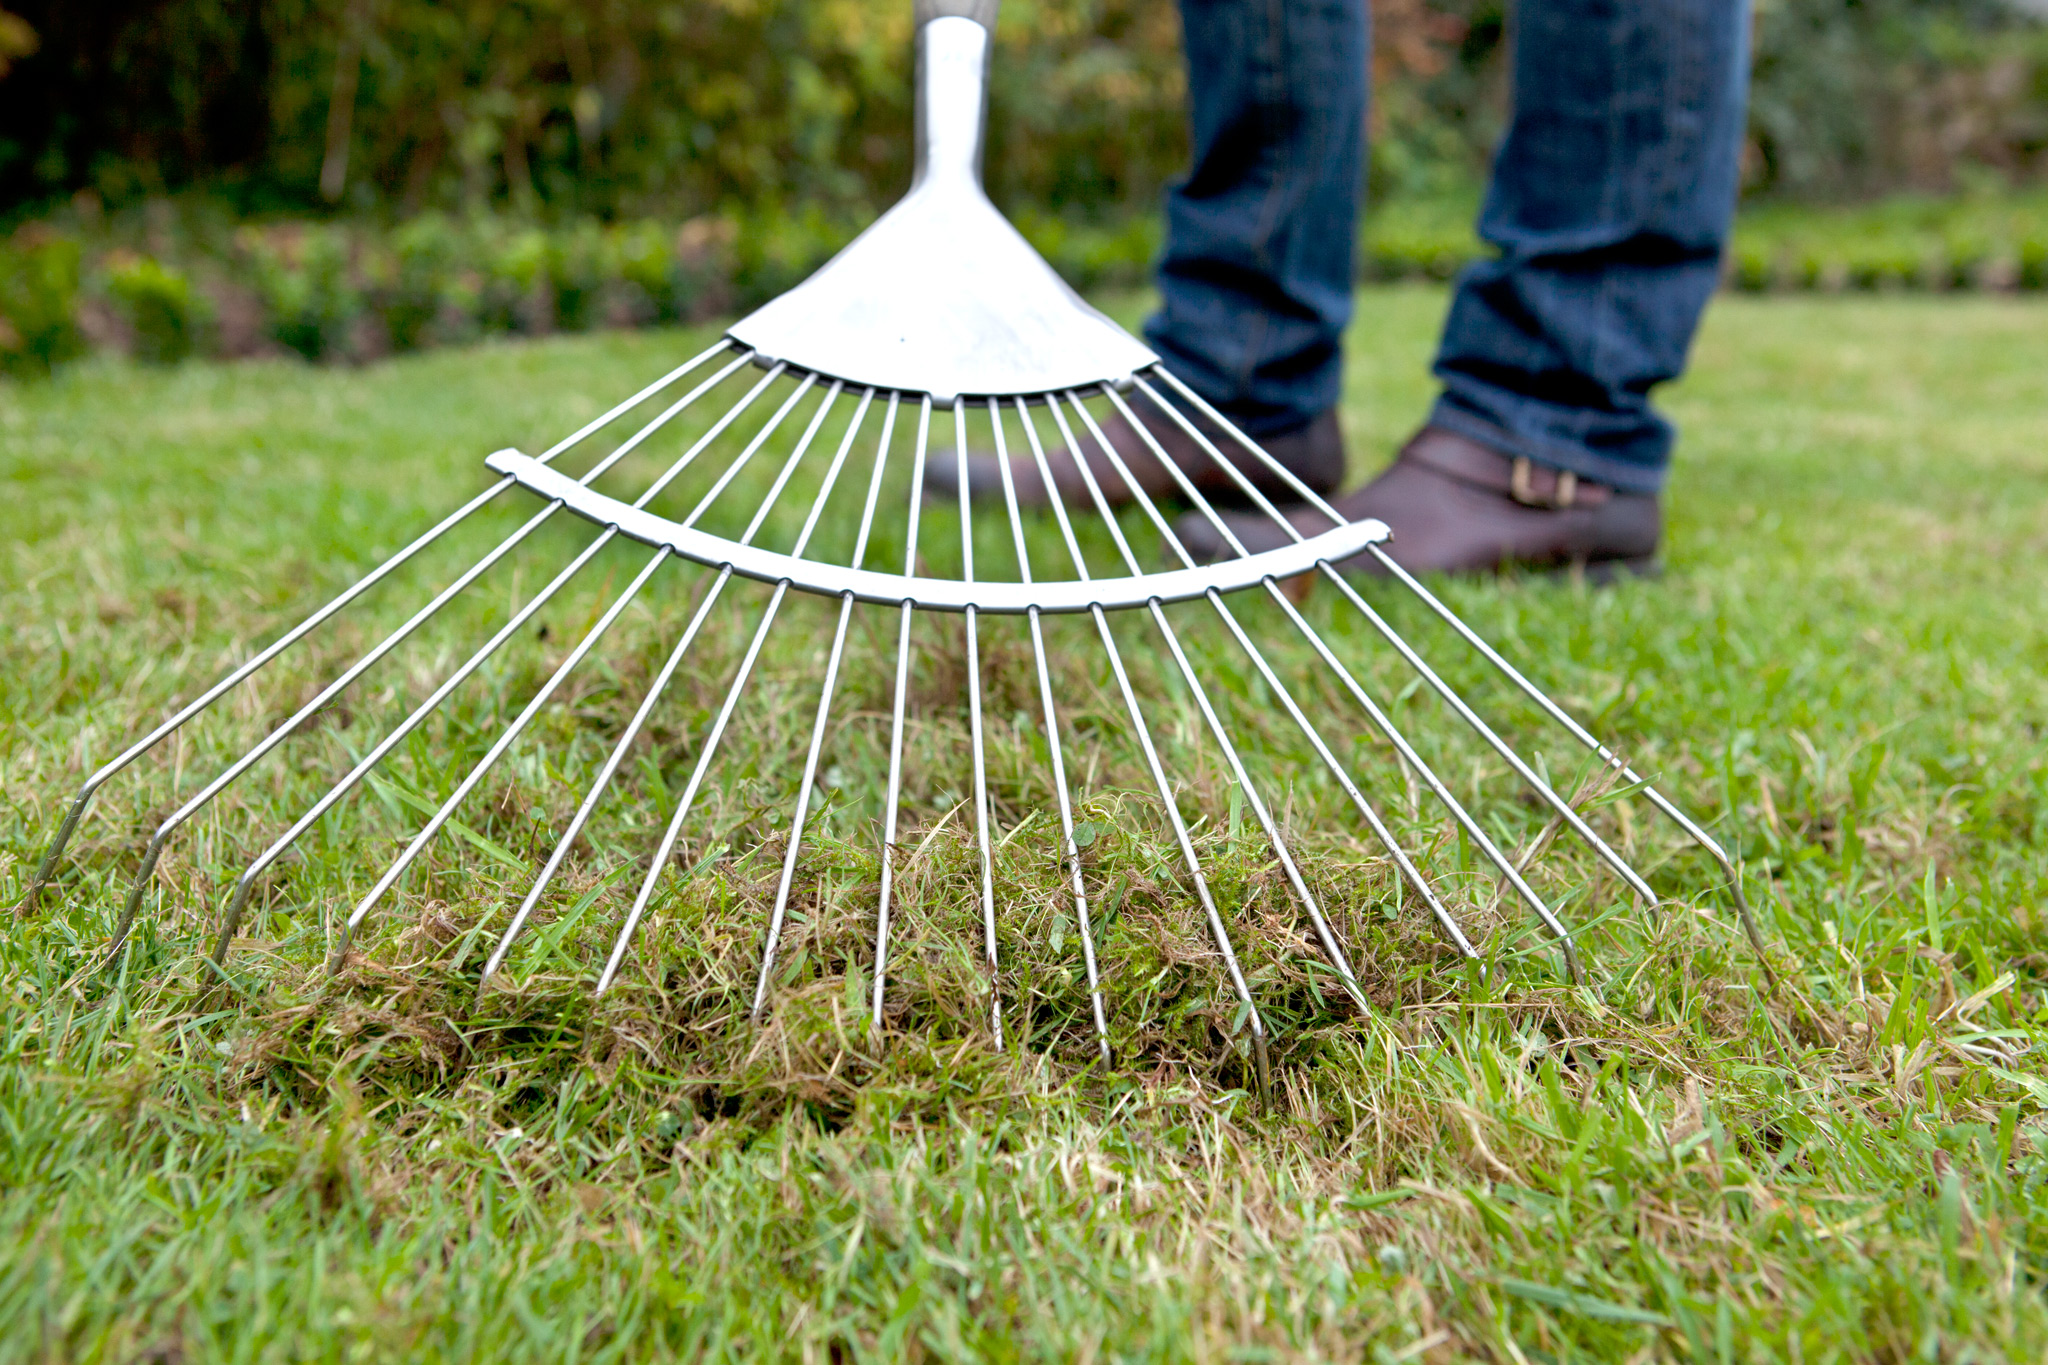 raking-thatch-out-of-lawn-2